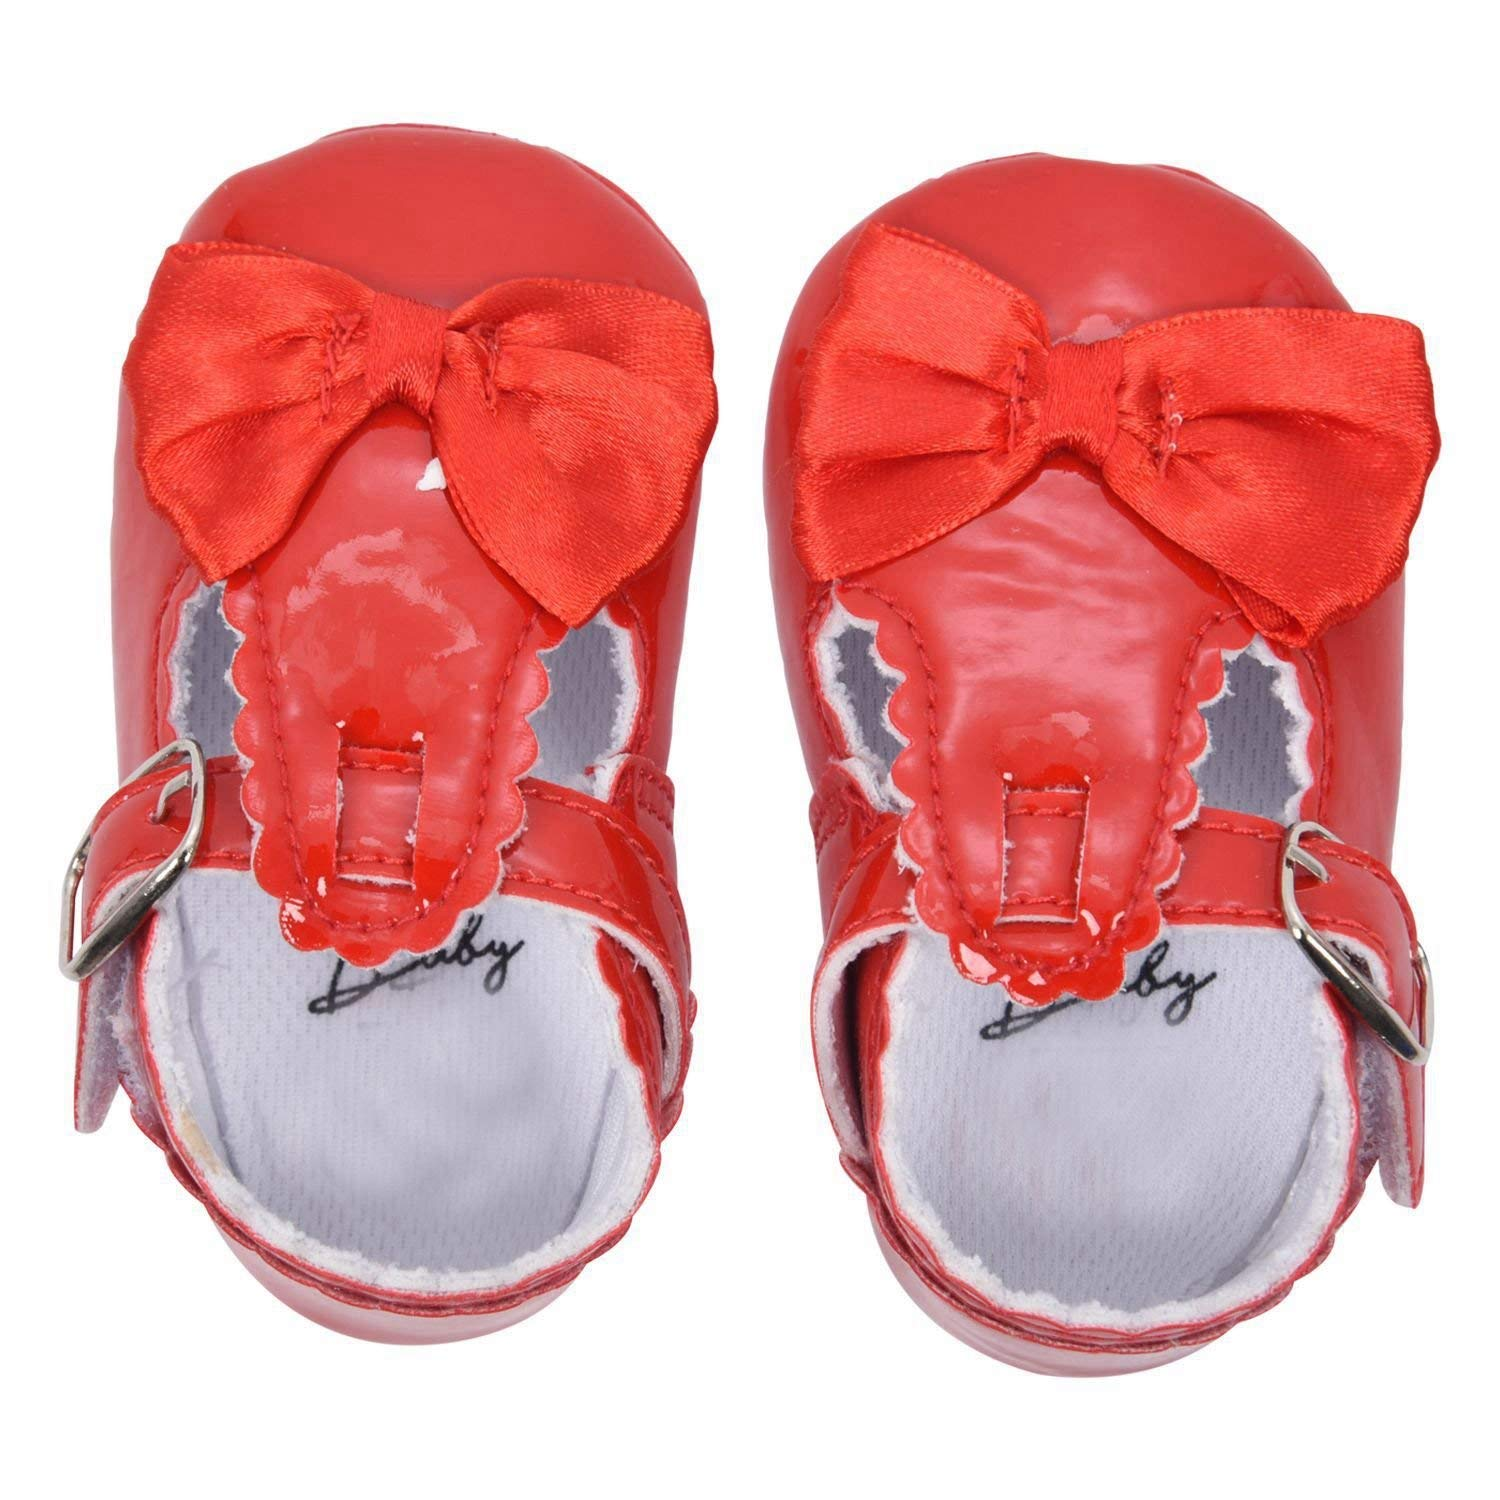 f3aa00efceaa Get Quotations · SODIAL(R) Newborn Baby Girl Bow Anti-slip Crib Shoes Soft  Sole Sneakers